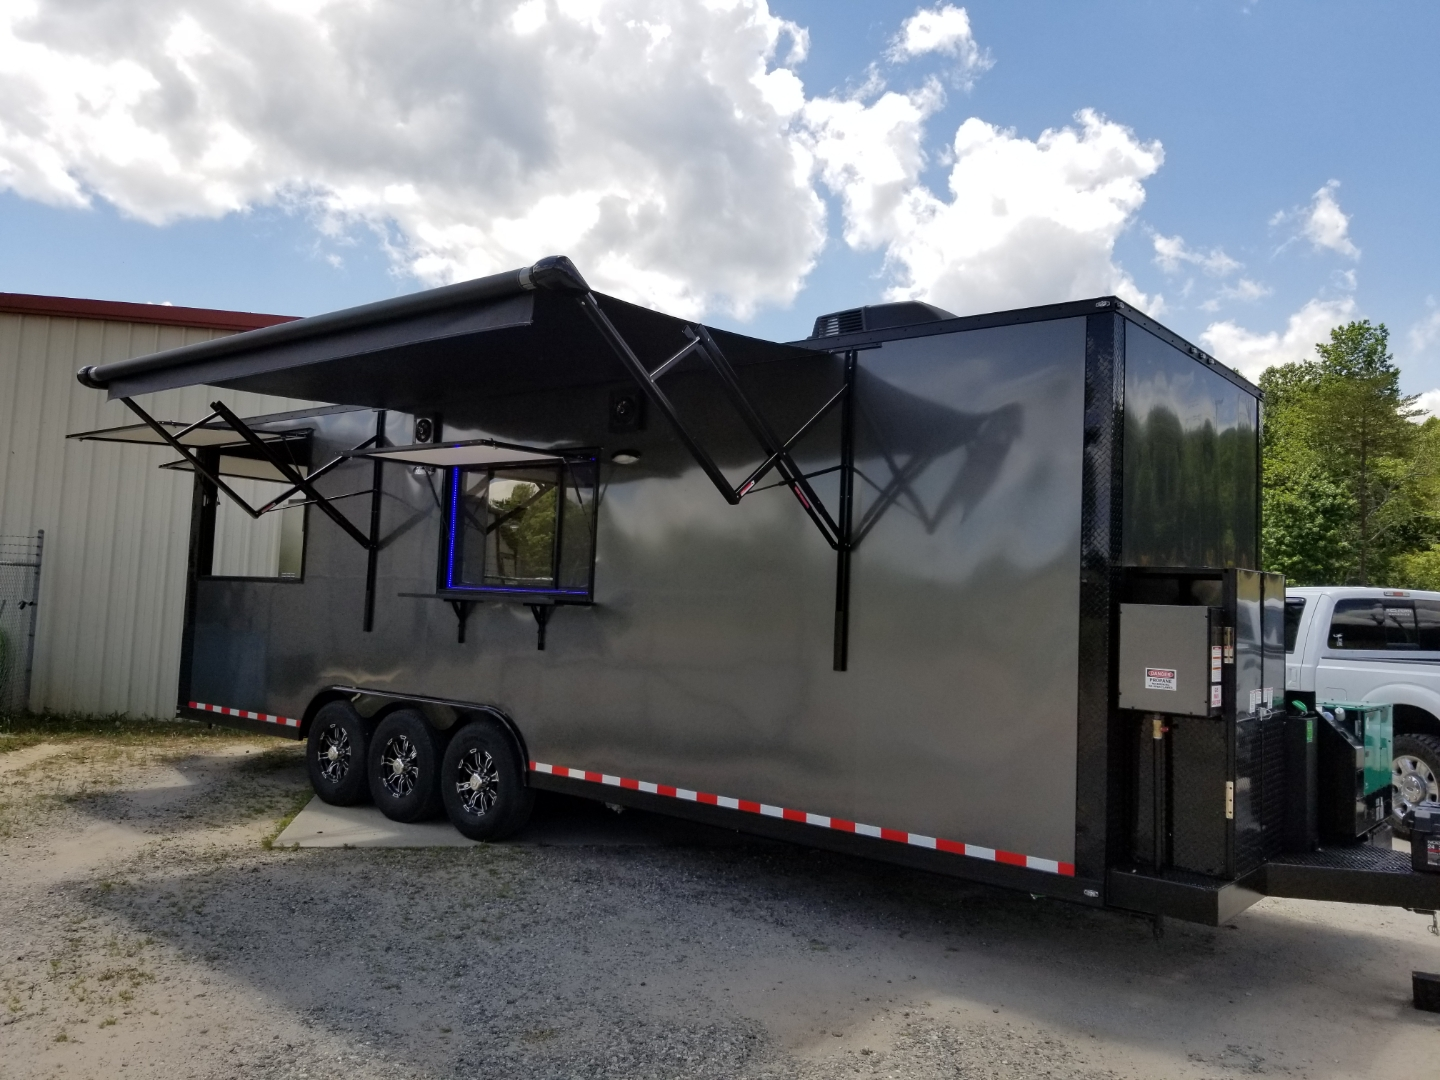 28' Smoker Porch Trailer